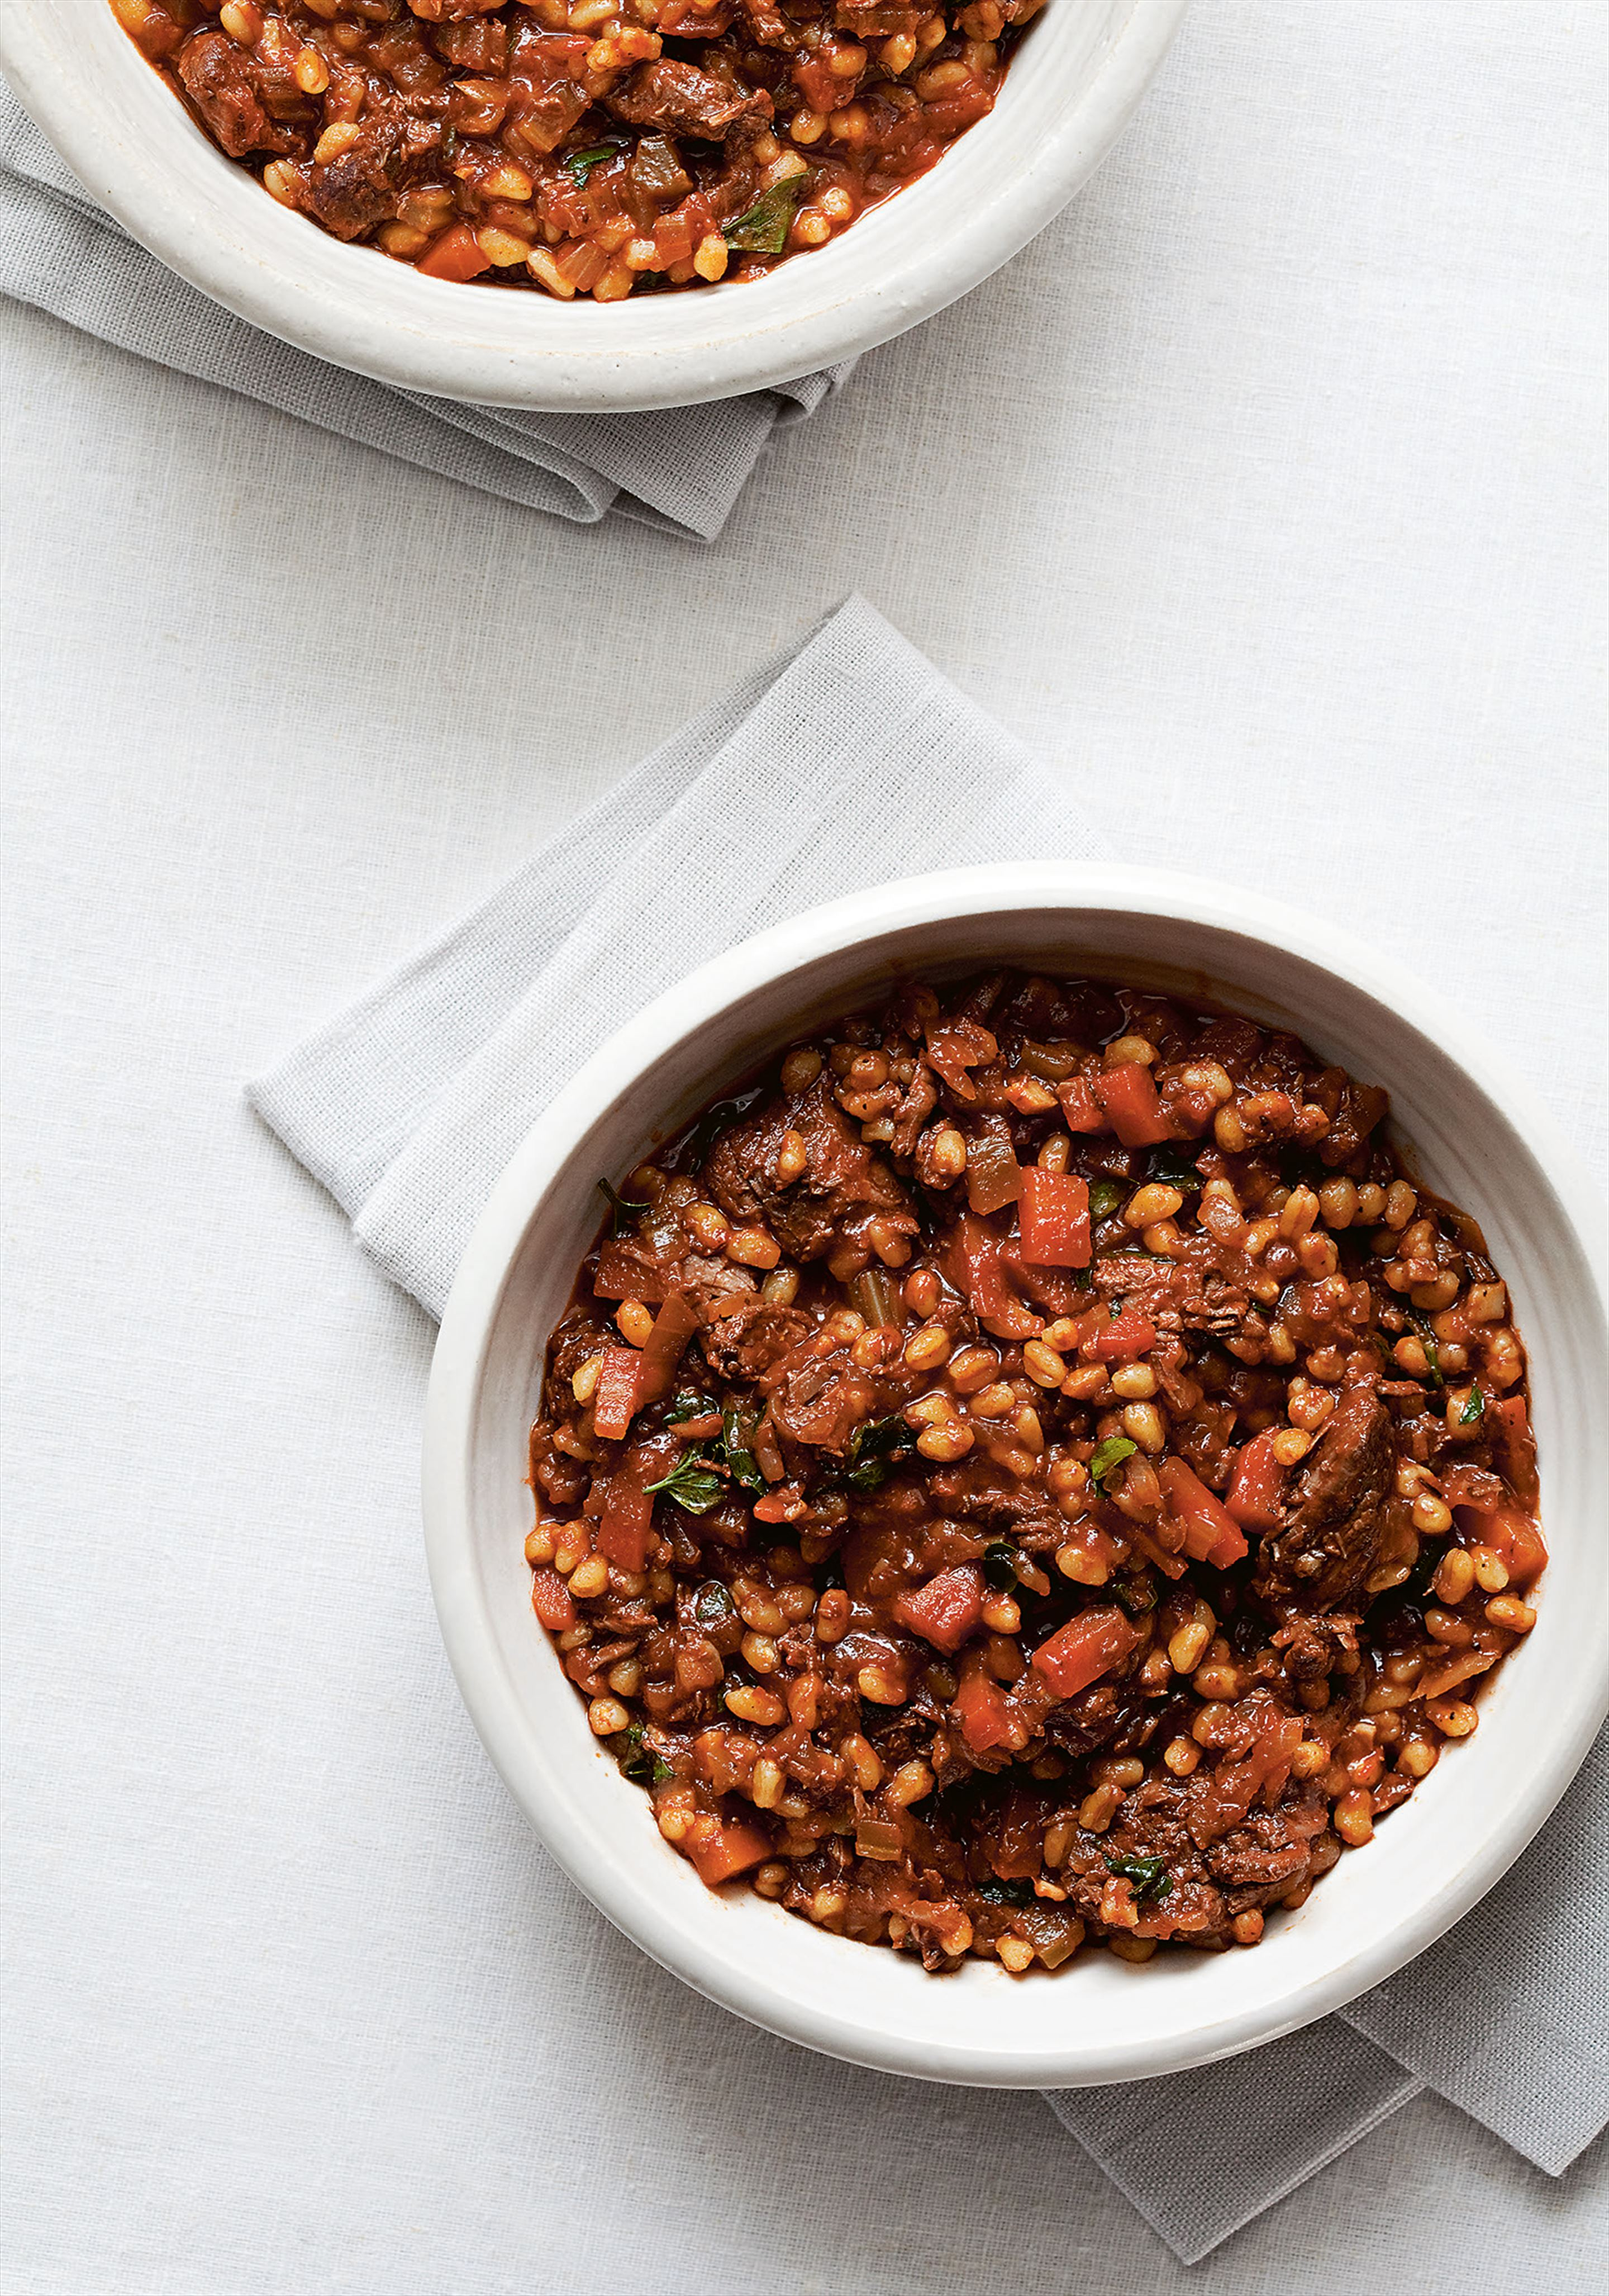 Slow-cooked venison with wheat berries